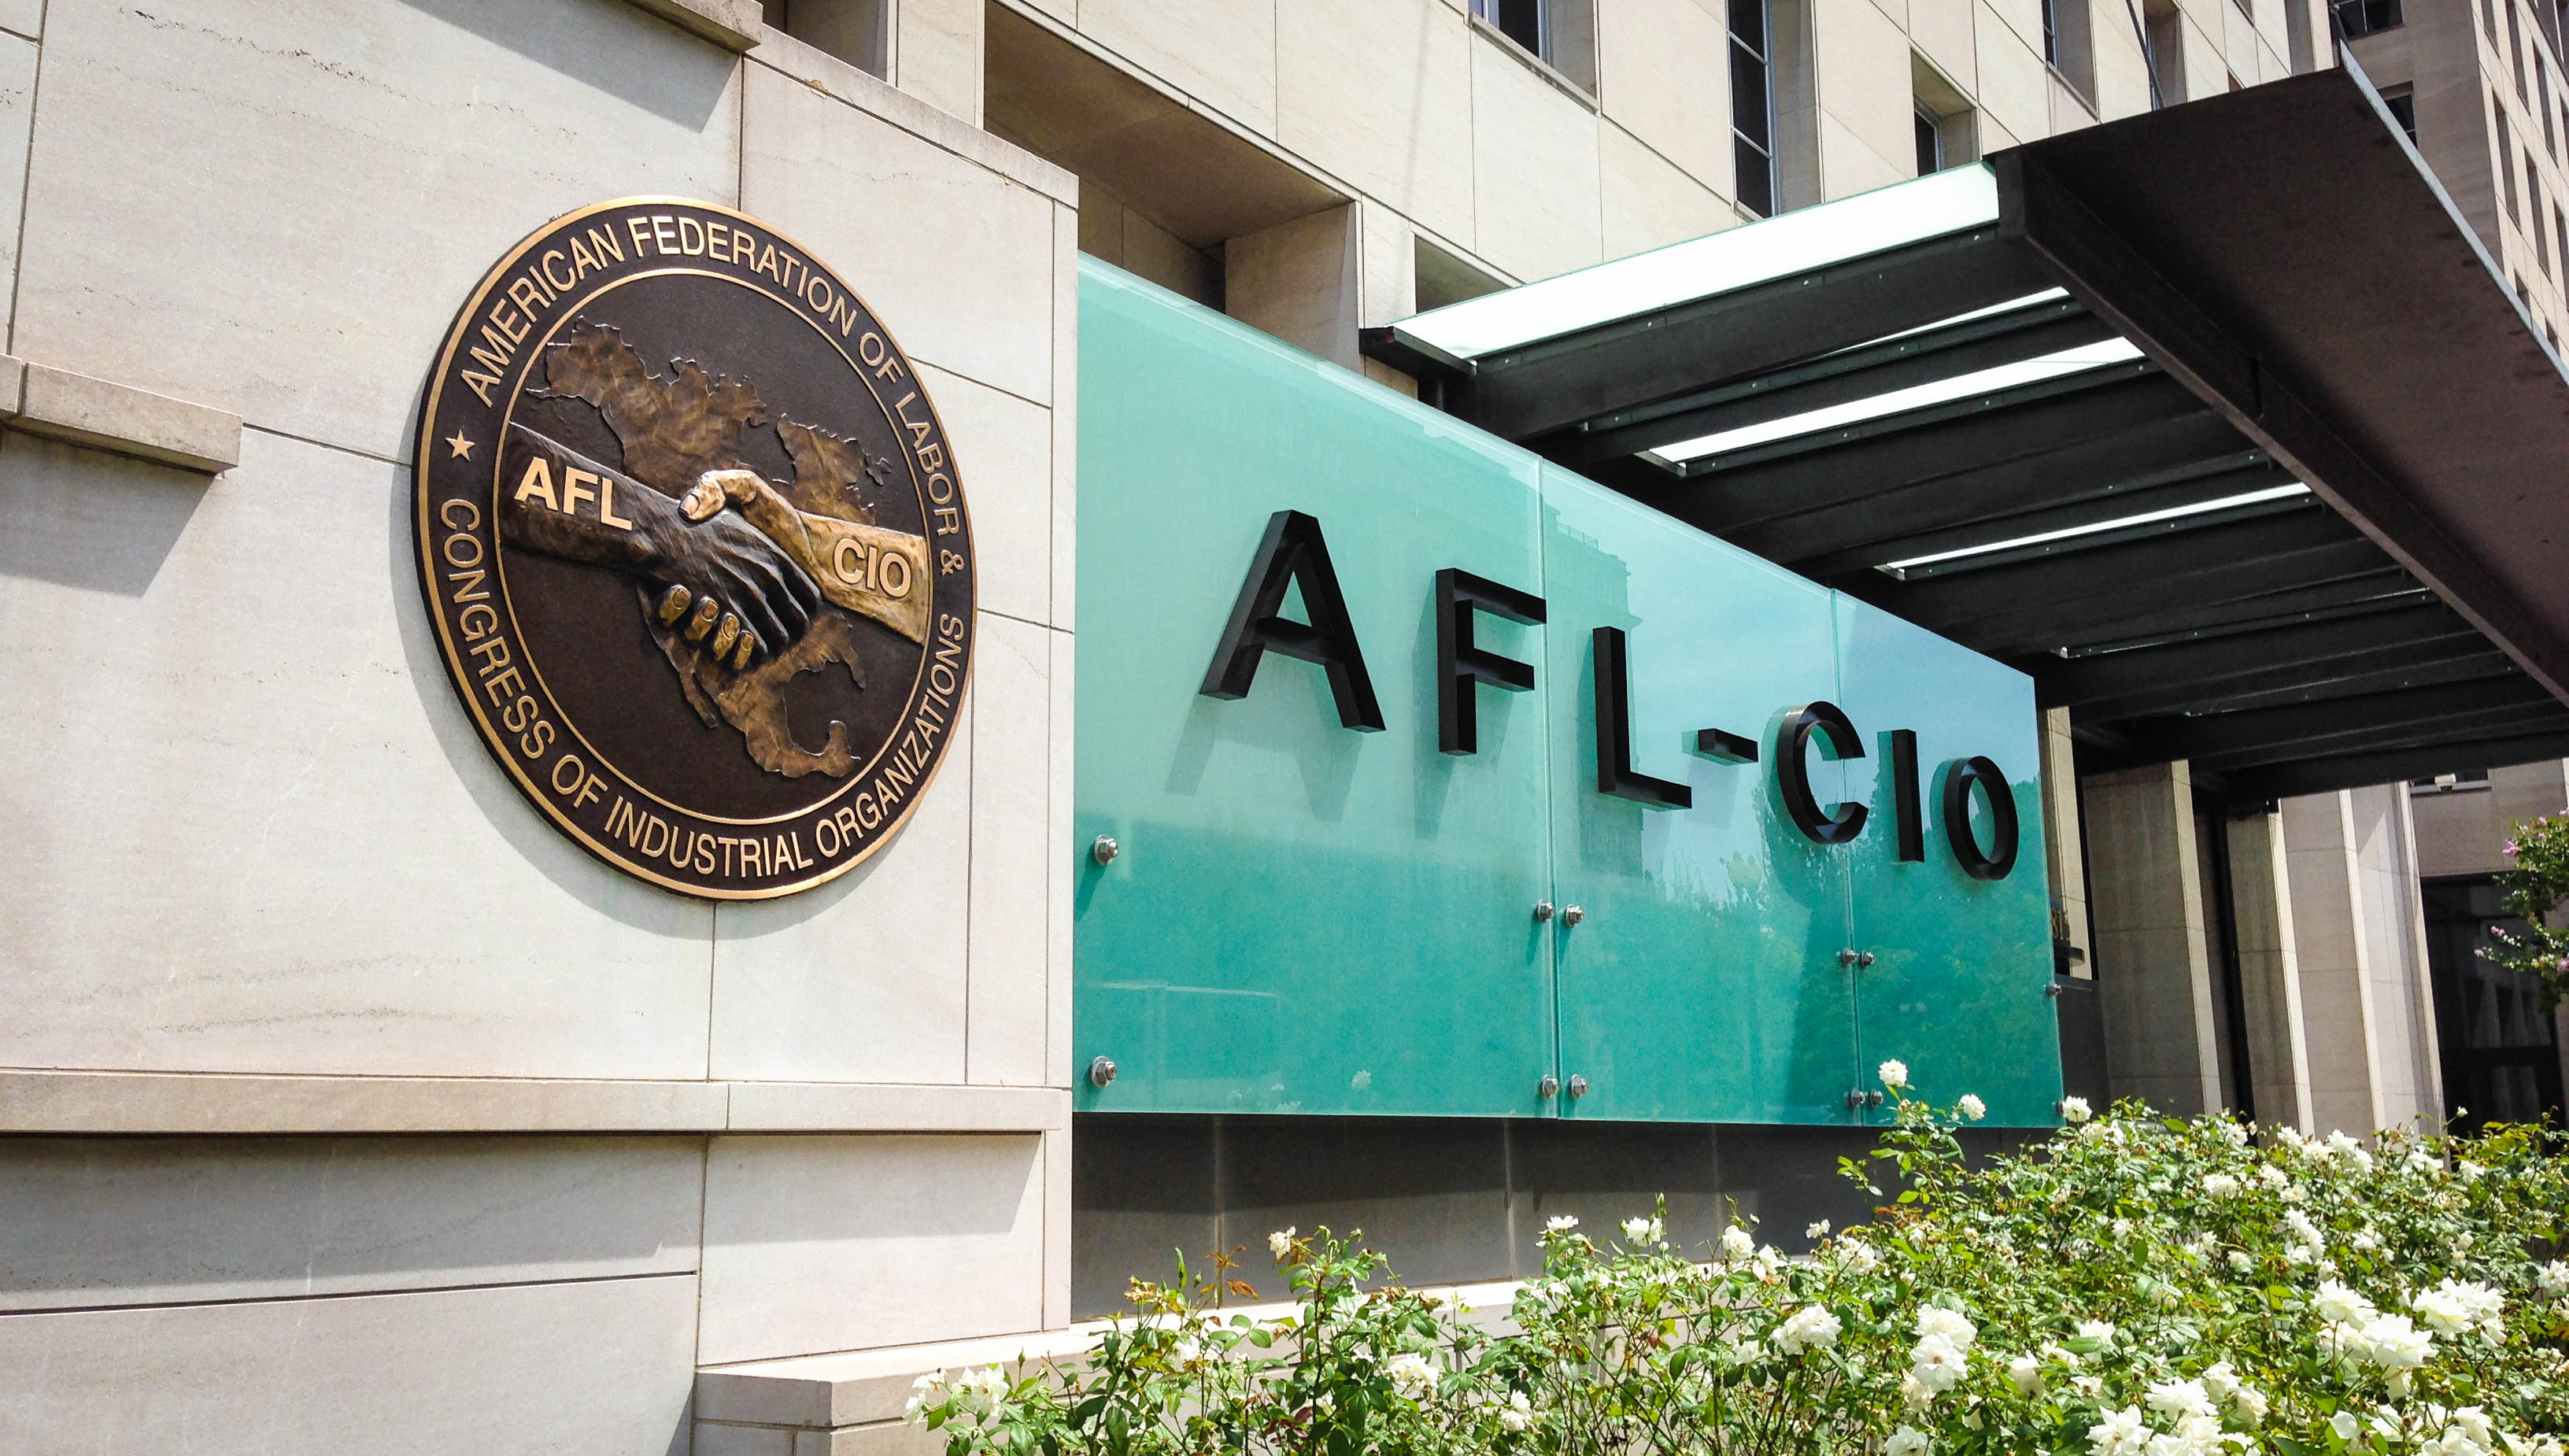 afl cio The afl-cio housing investment trust is a labor-friendly fixed-income investment company investing pension capital to generate competitive returns, housing, and union jobs.